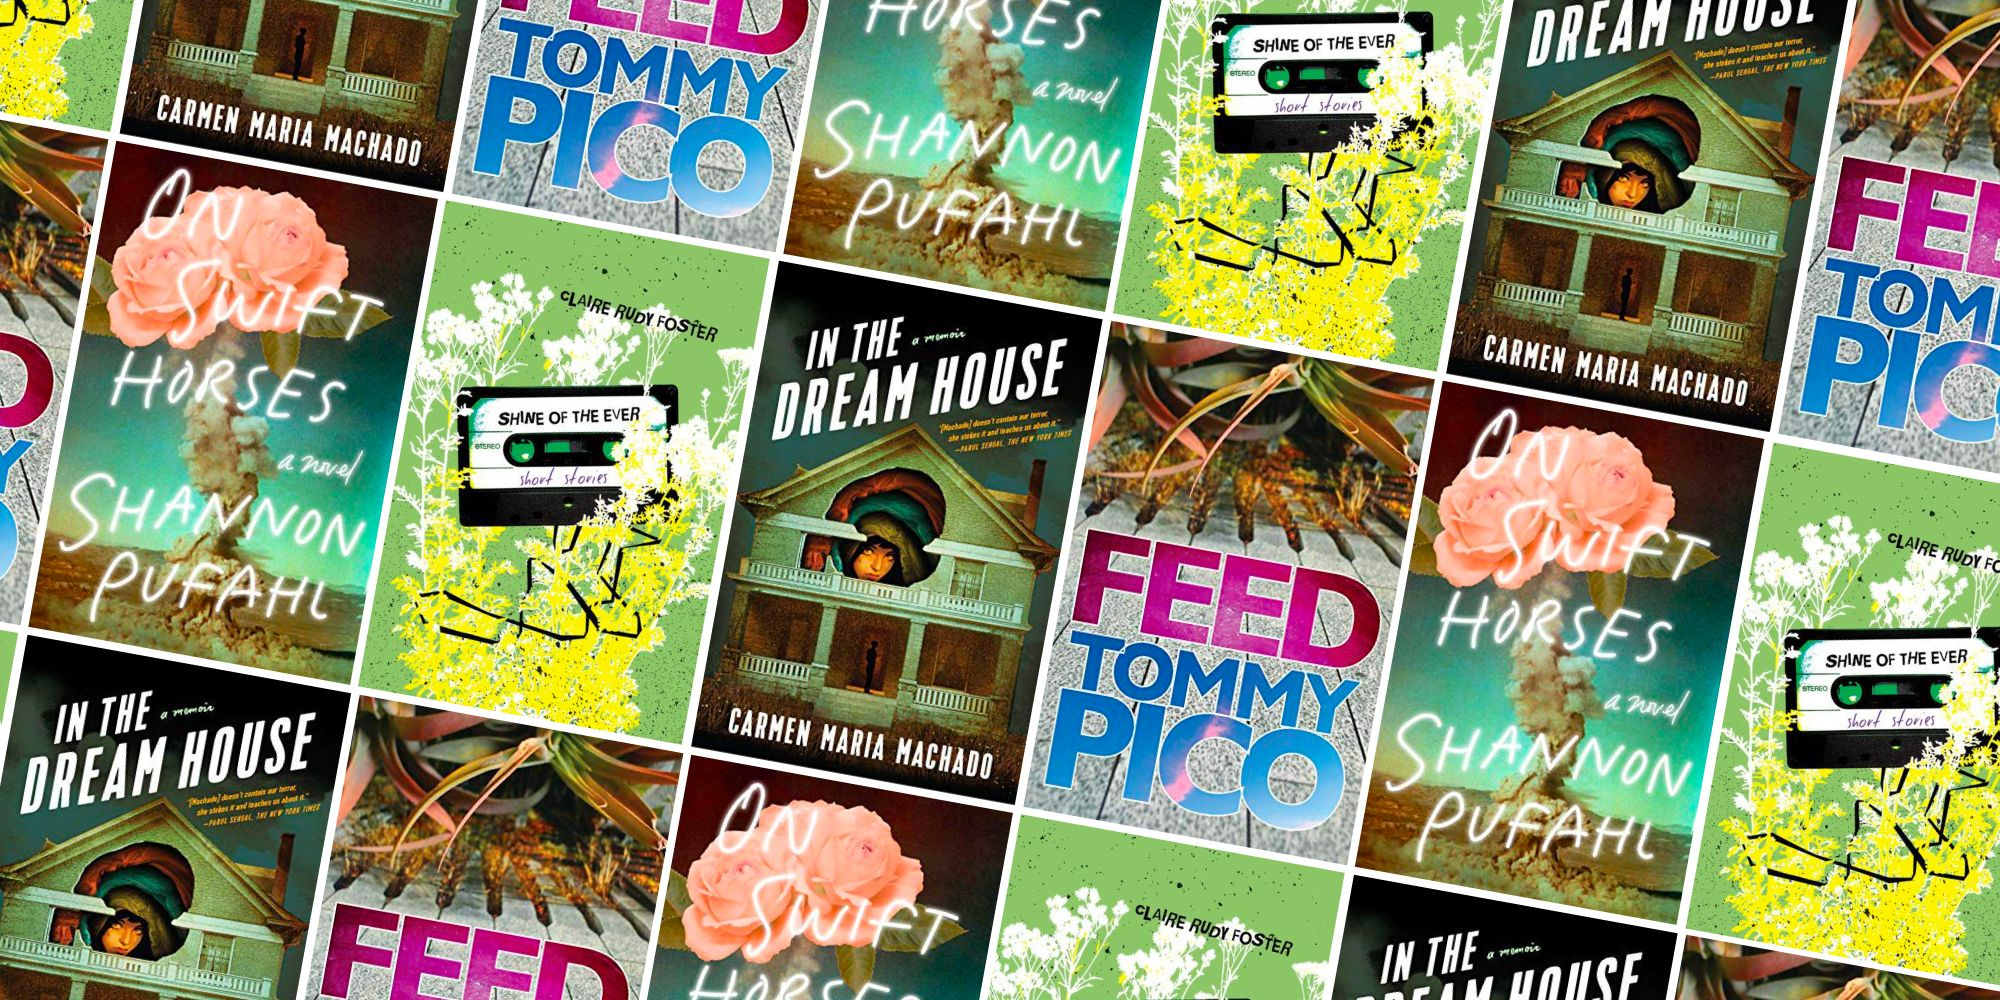 45 Best LGBTQ Books of 2019 — LGBTQ Novels for Pride Month